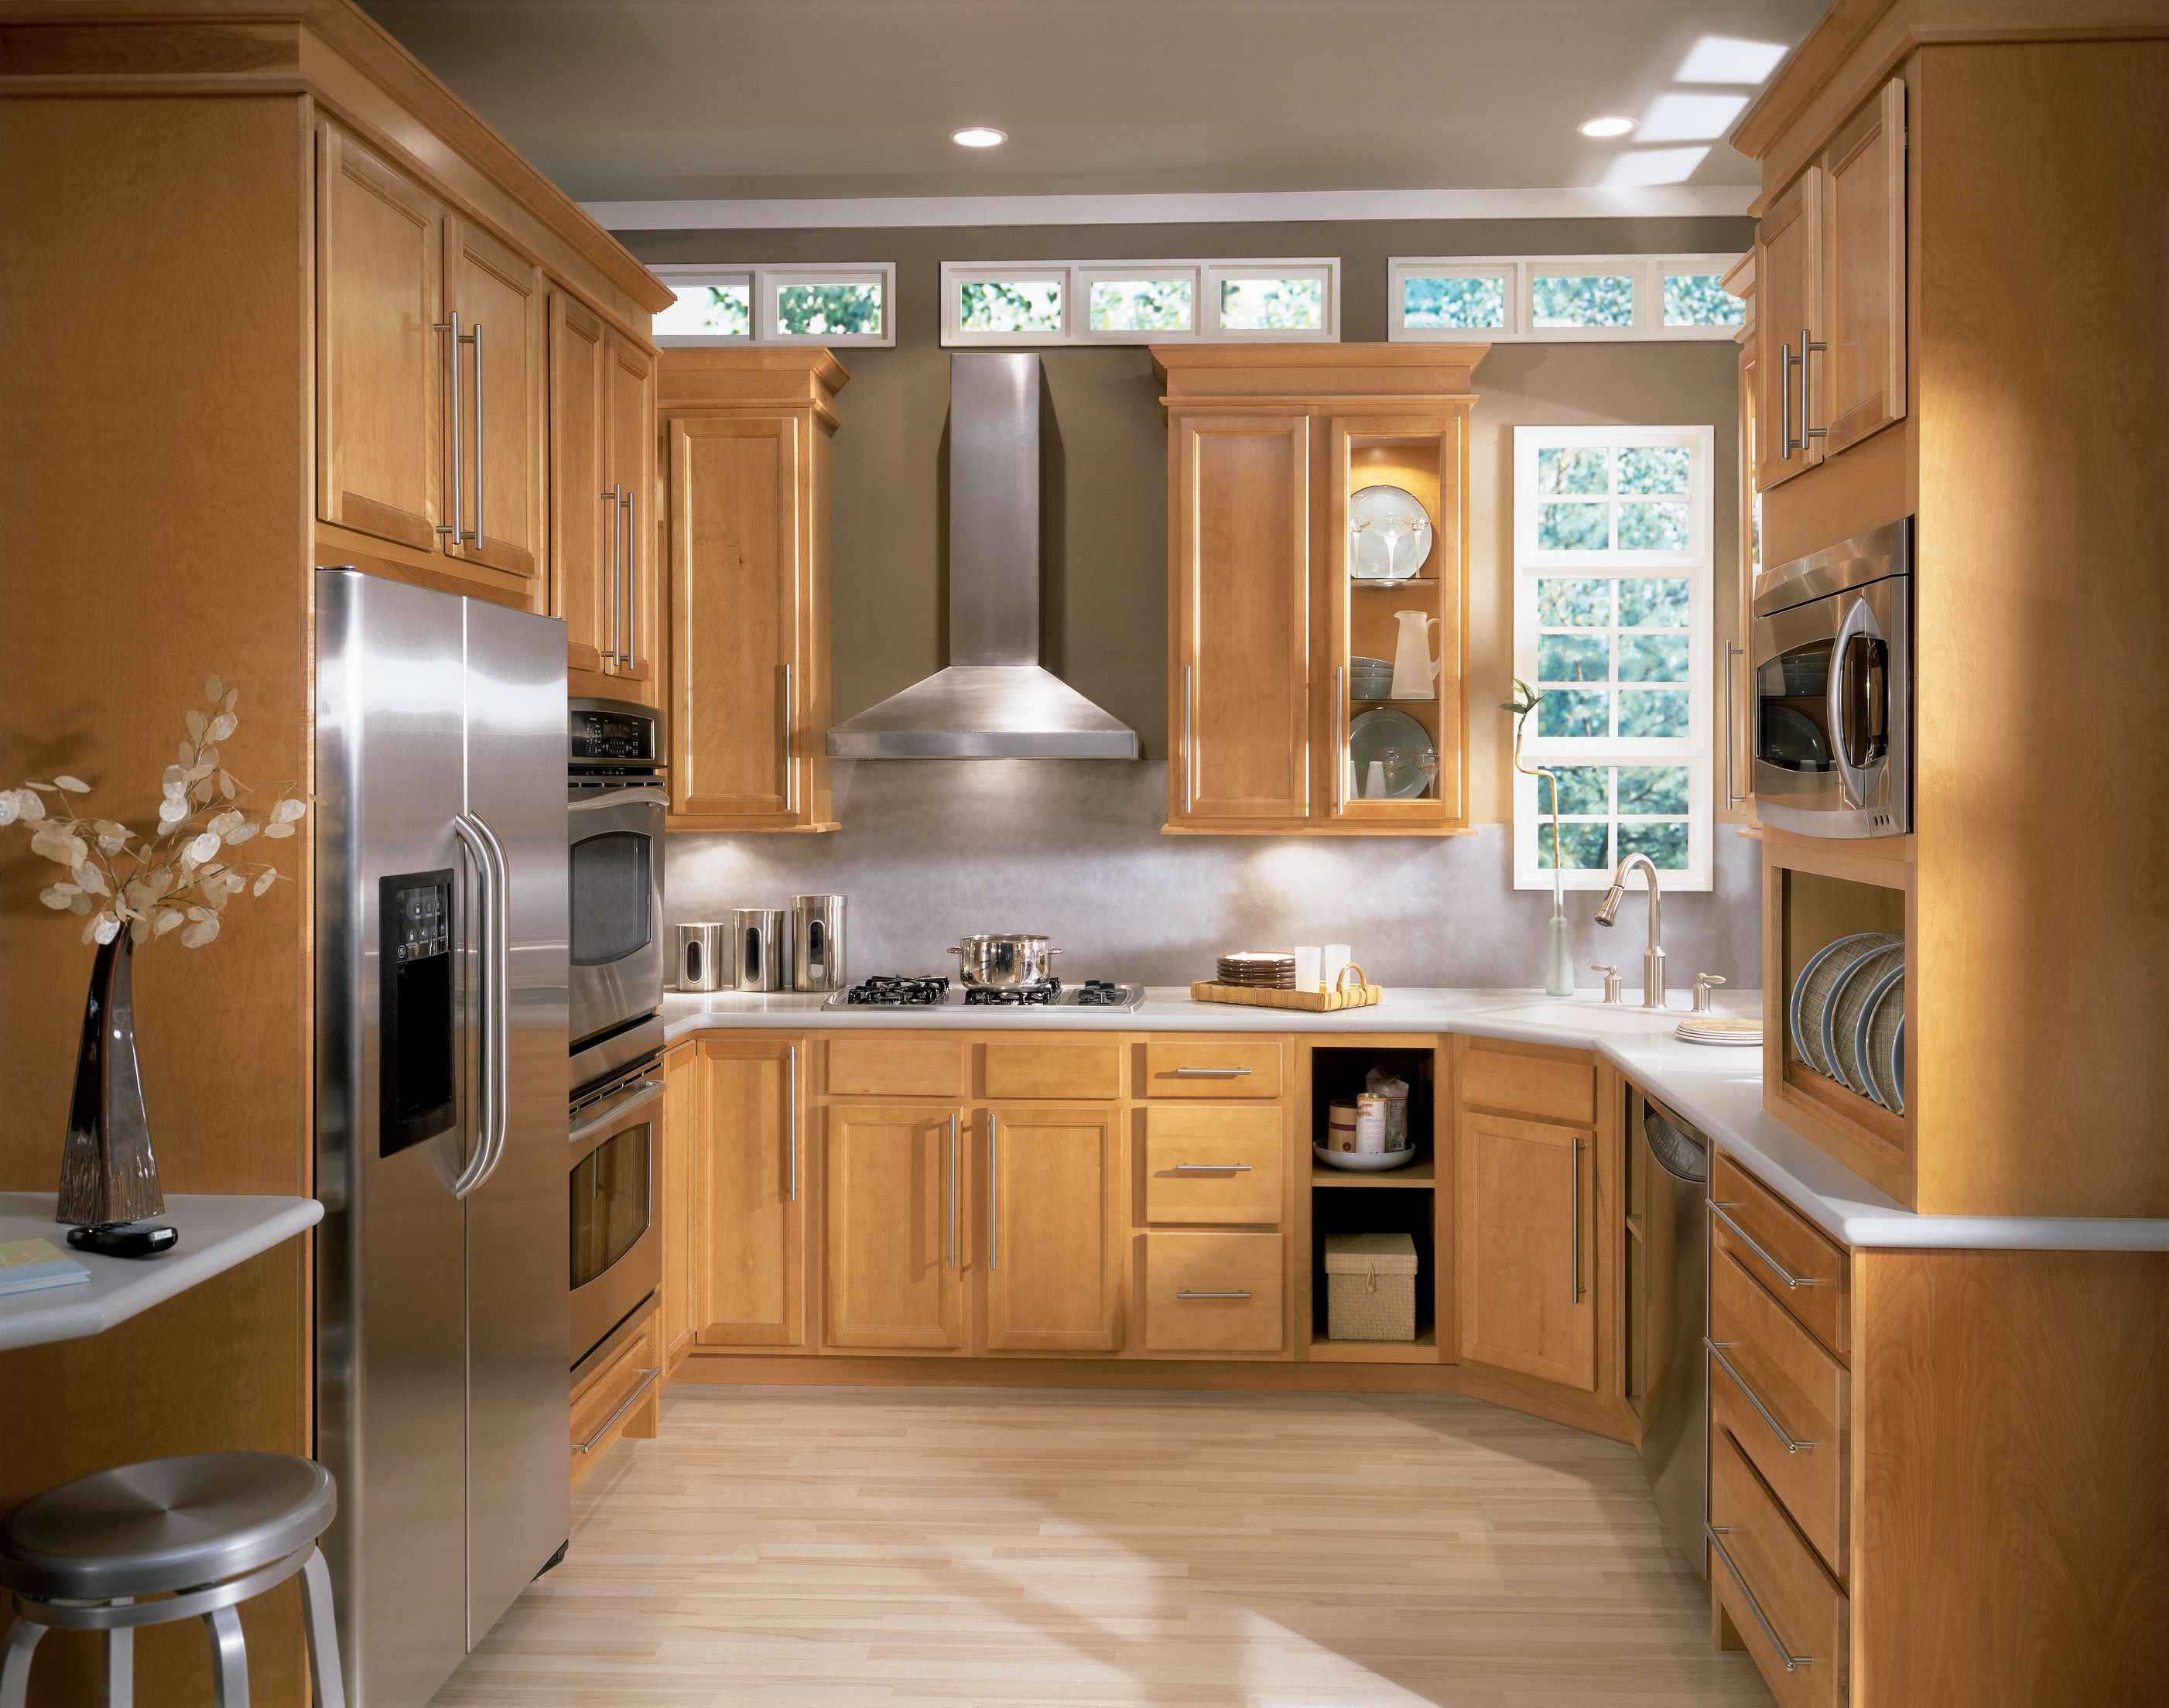 Sinclair Birch Cabinet Doors Feature A Narrow Rail Flat Center Panel And Tight Wood Grain That Com Birch Kitchen Cabinets Wood Kitchen Cabinets Kitchen Design